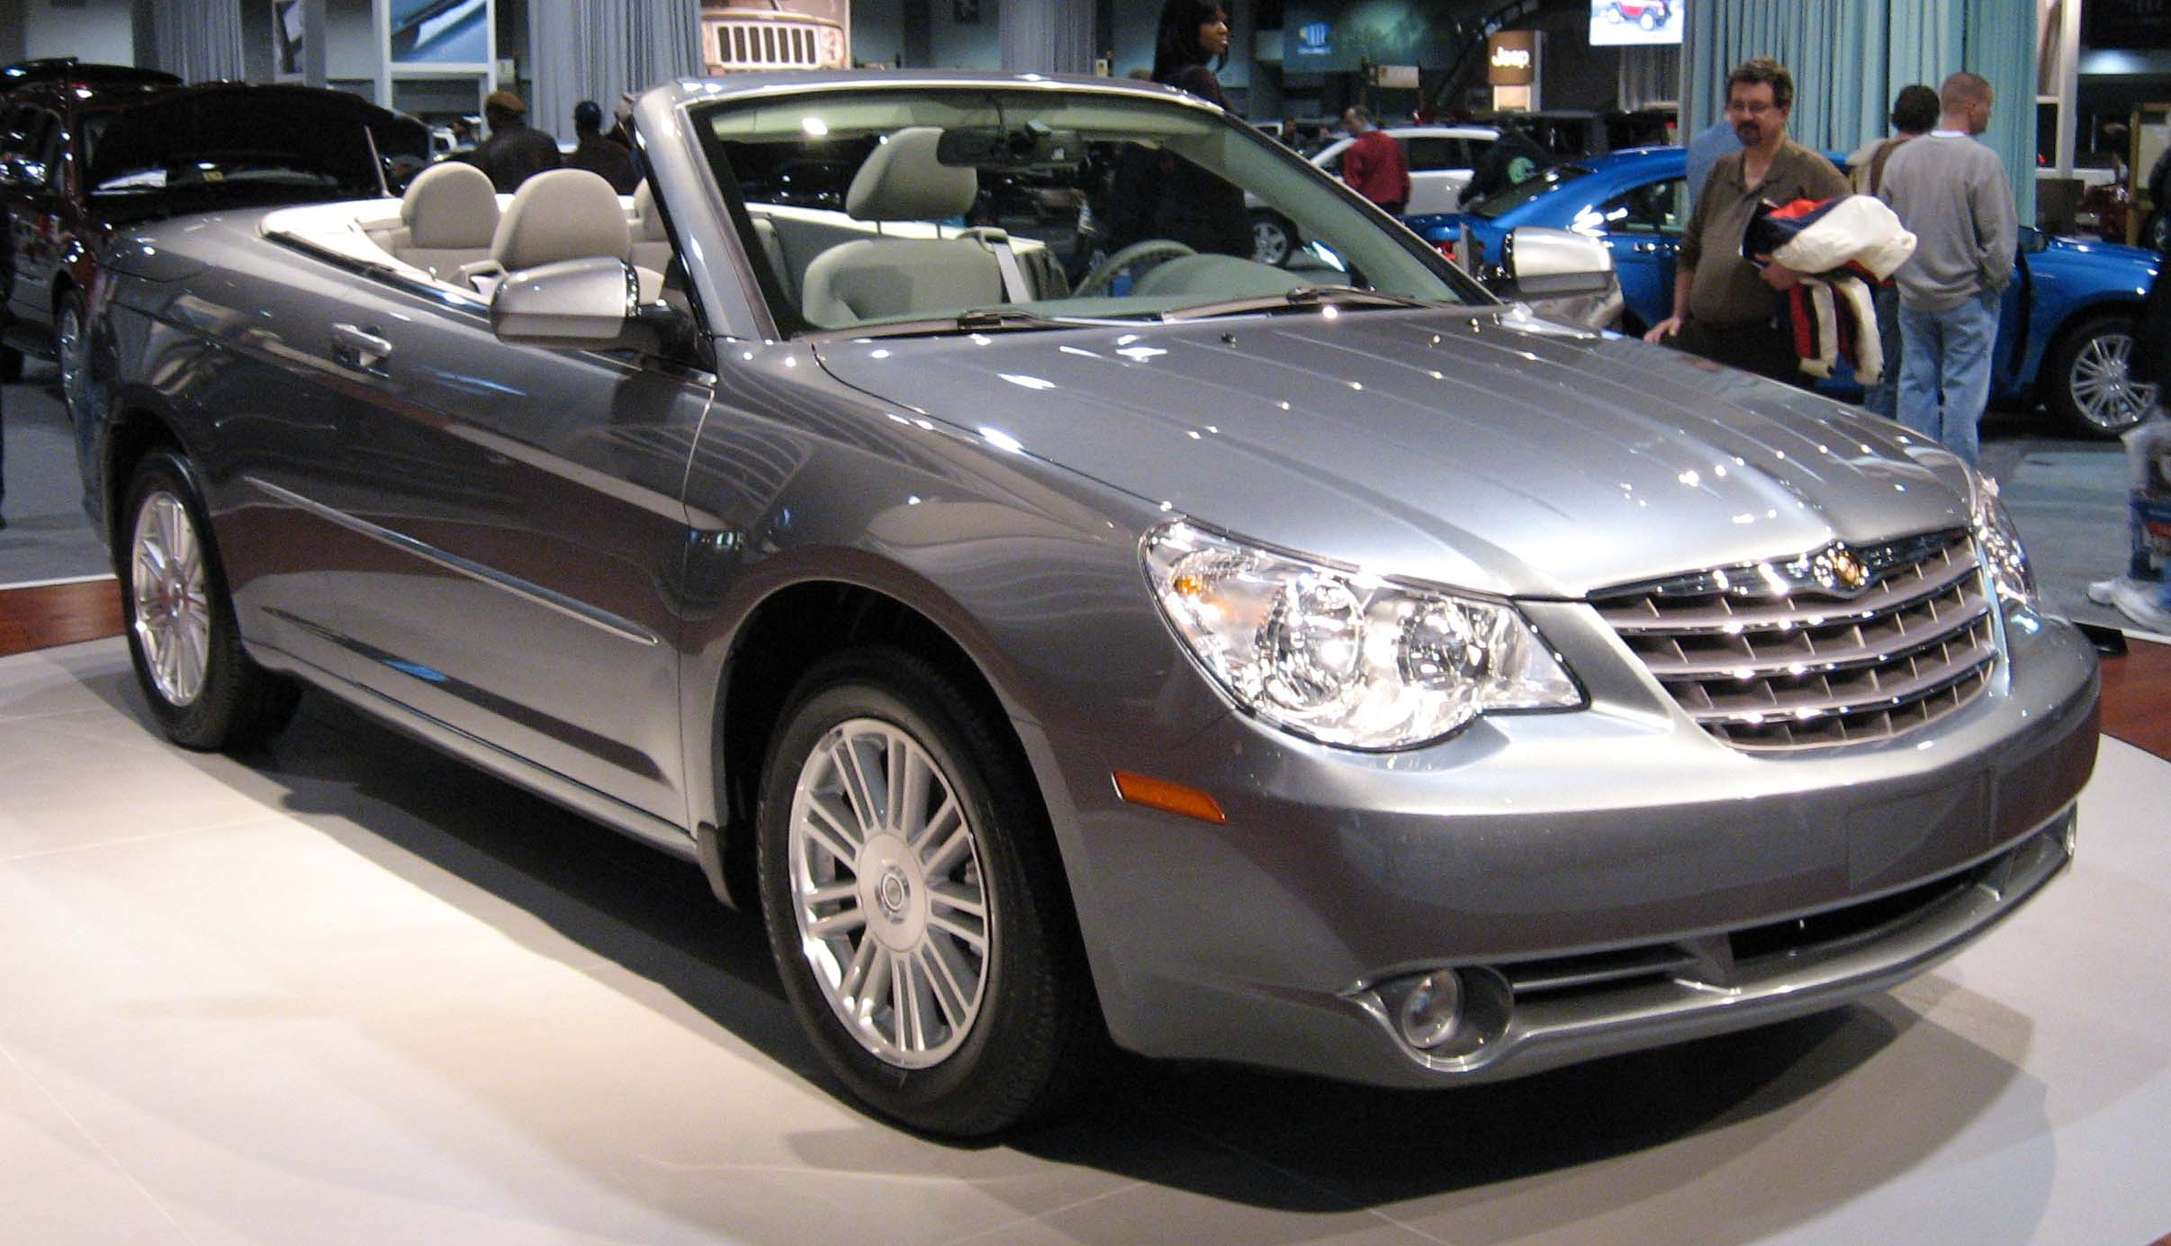 Chrysler Sebring Convertible #7750334